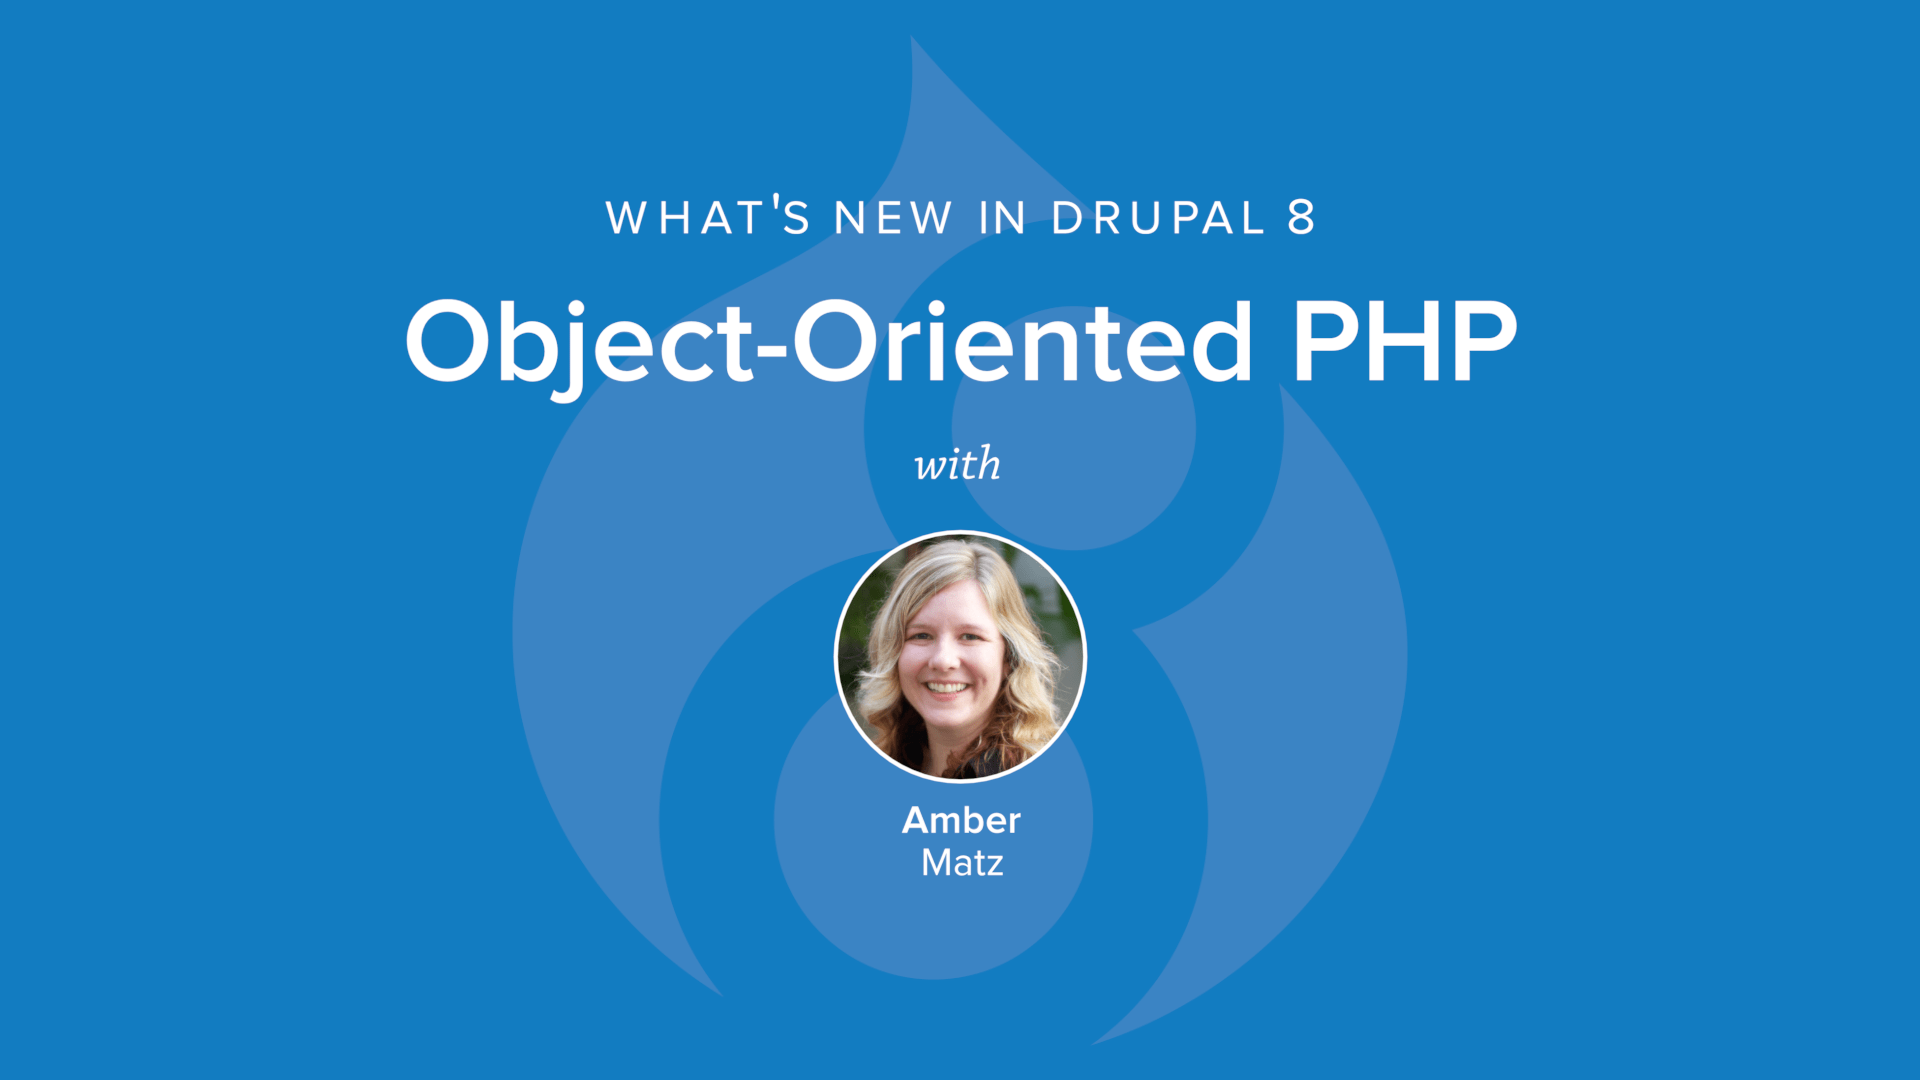 Php Wallpaper Hd What S New In Drupal 8 Object Oriented Php Drupalize Me